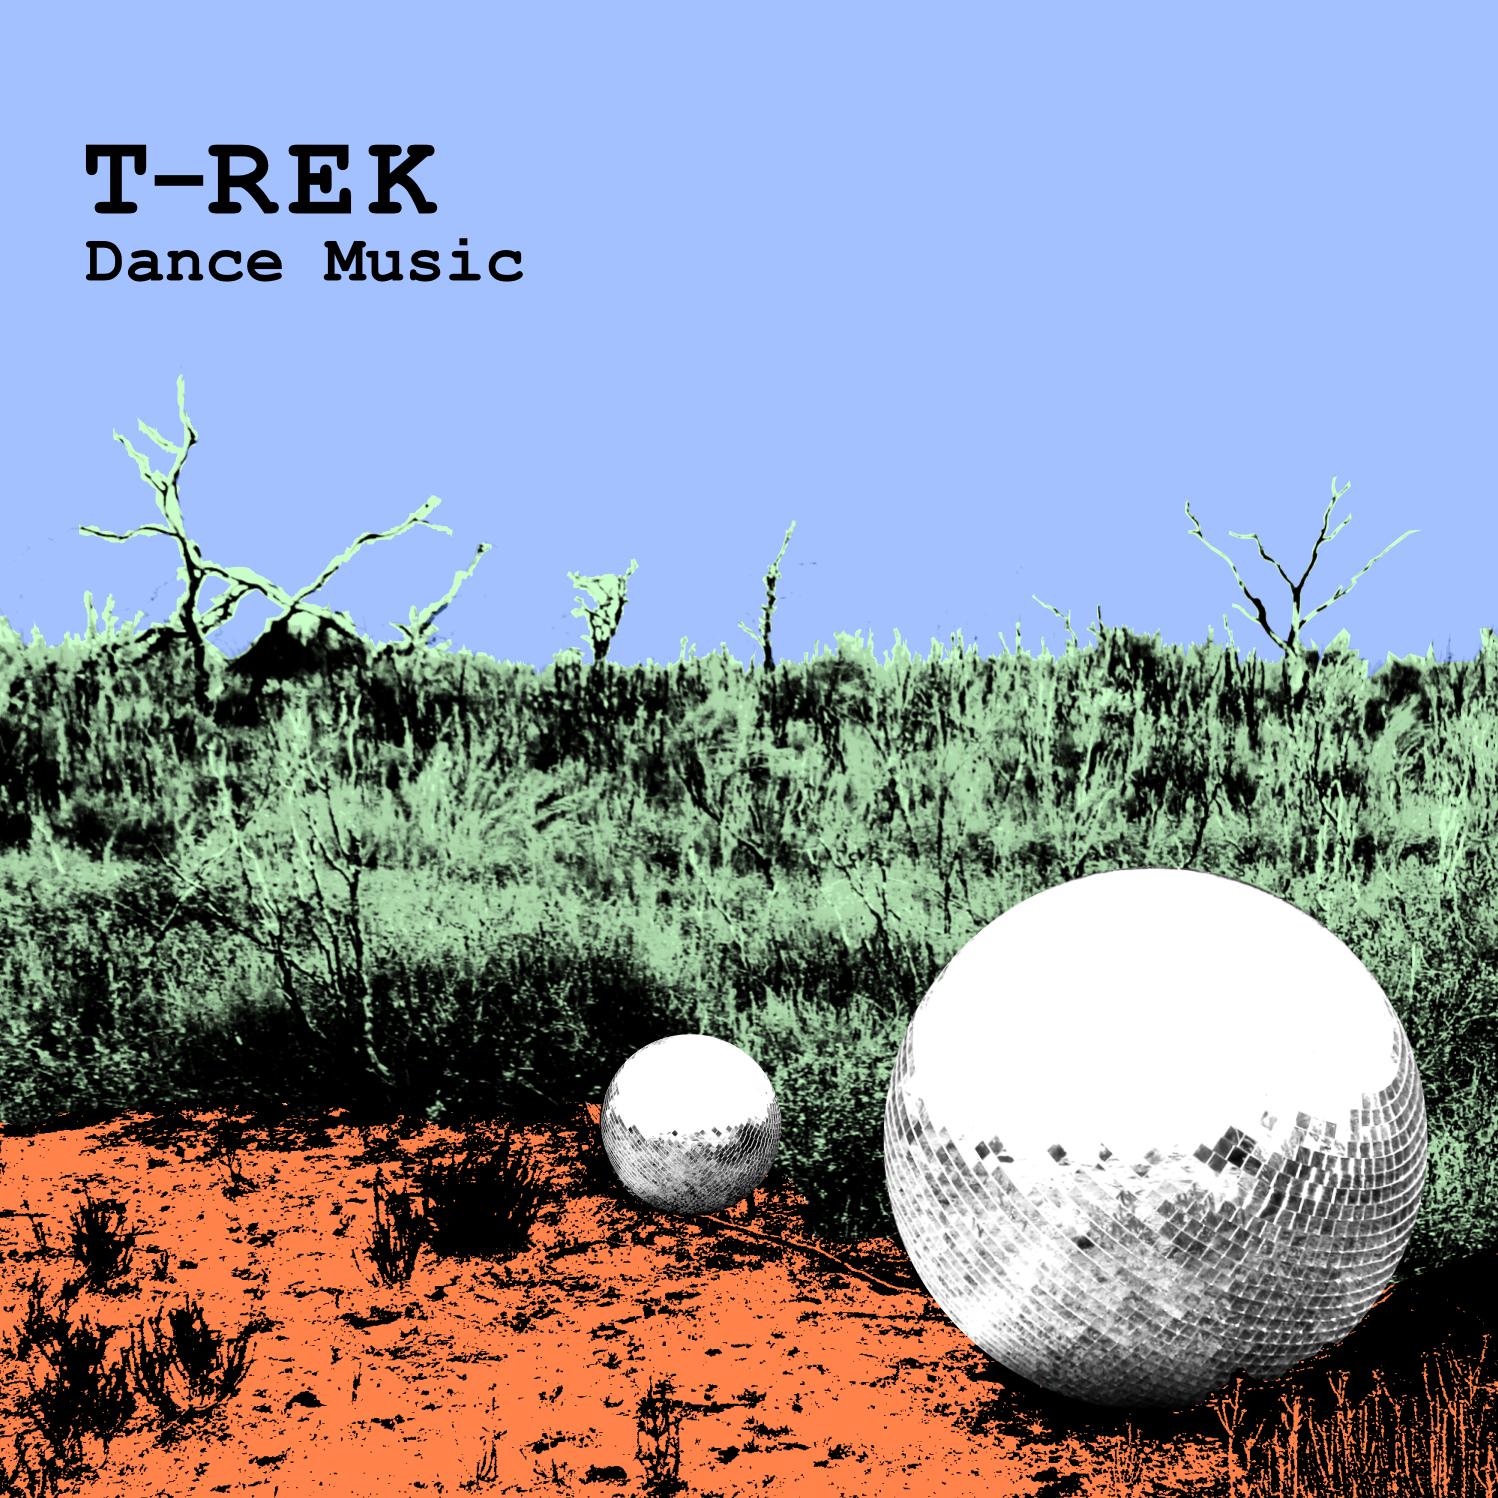 T-Rek - Dance Music - Front Cover Image